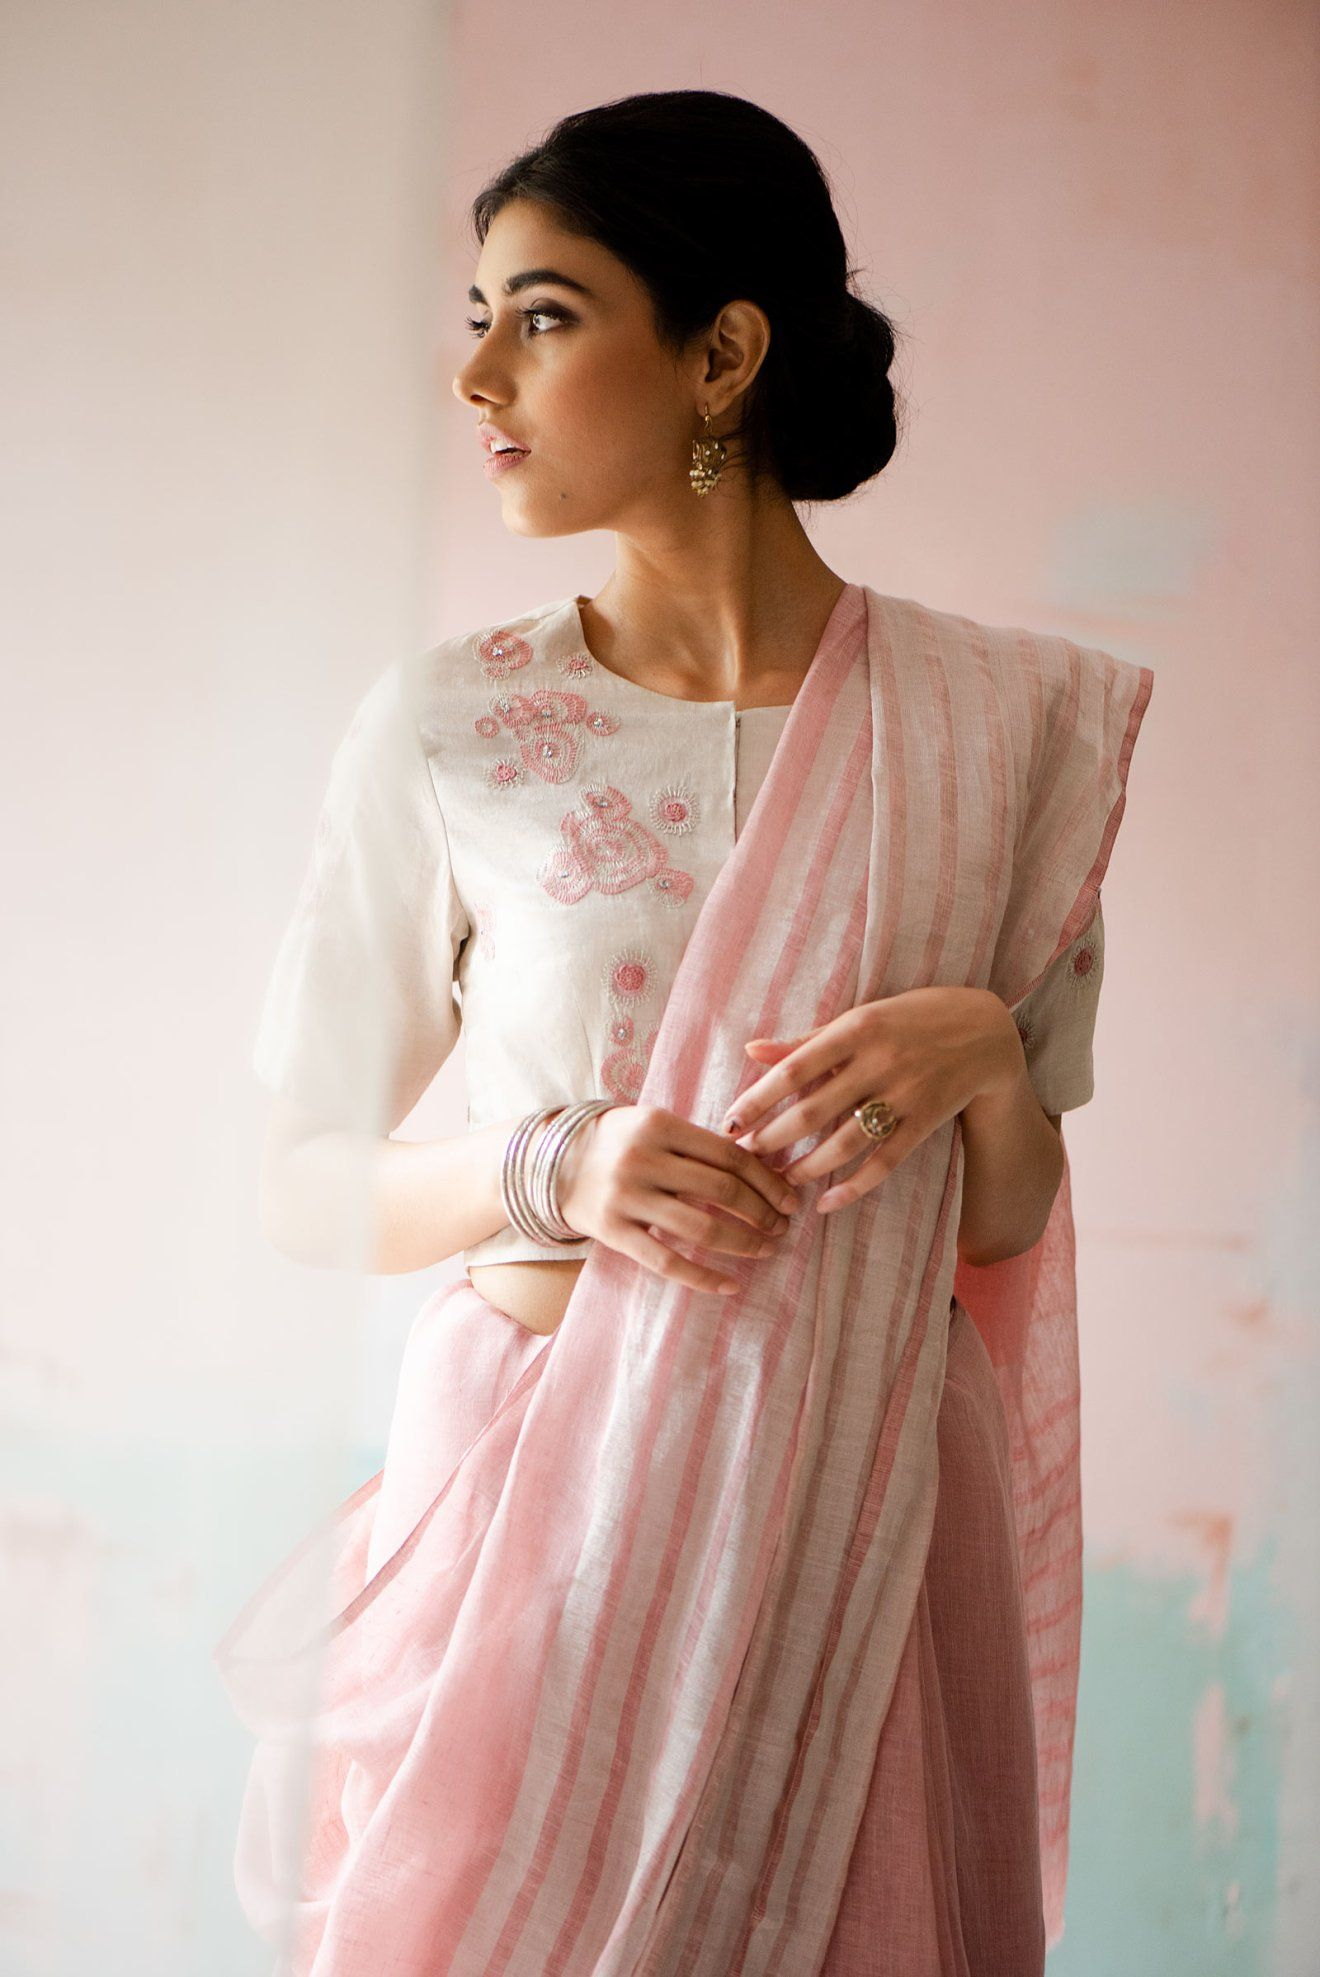 Pin On Grace In A Saree